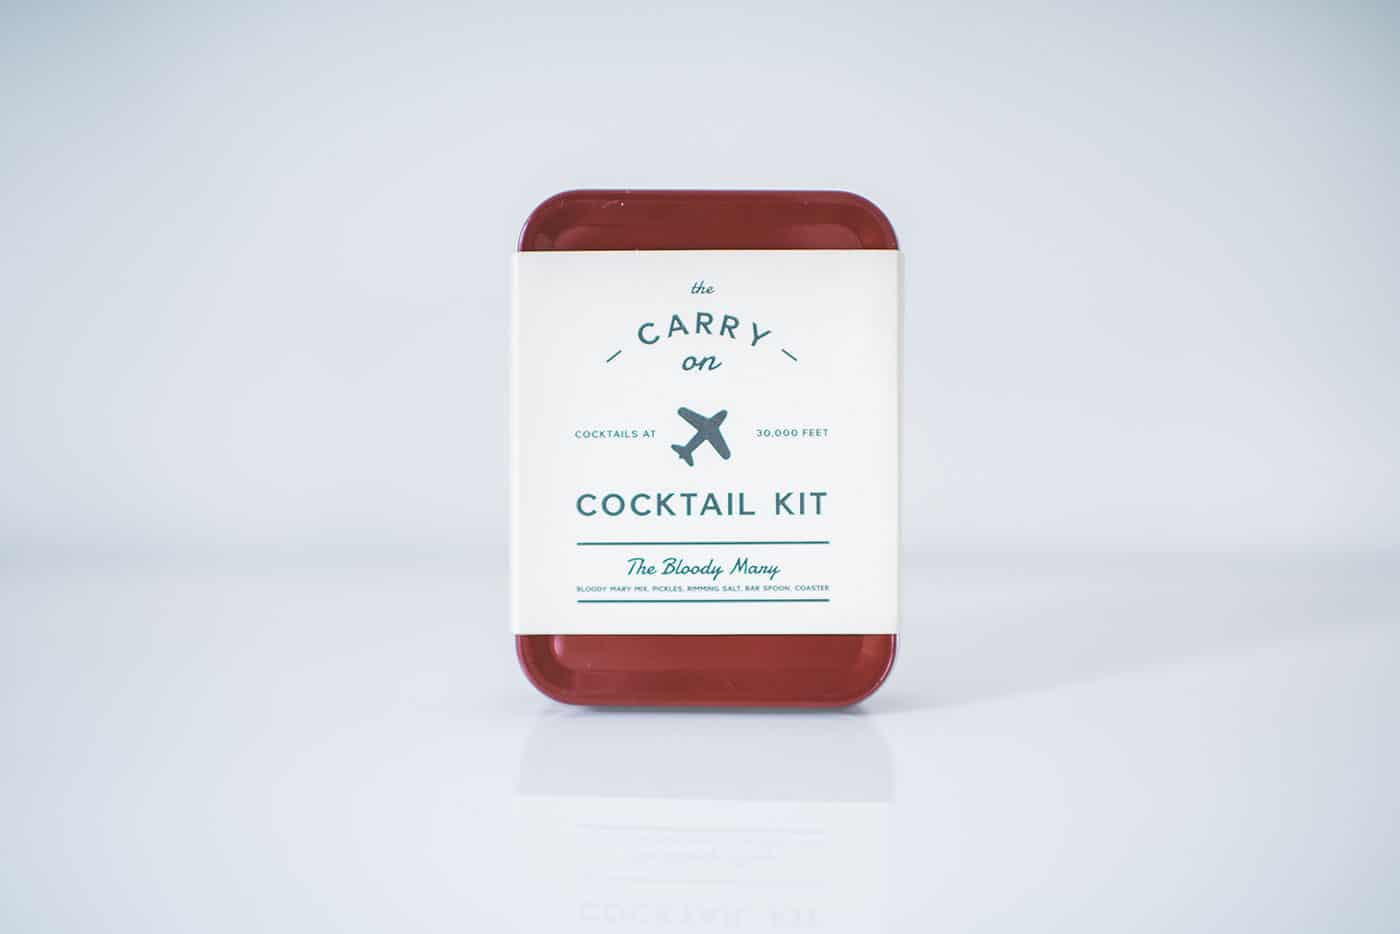 Tiffani Thiessen's Holiday Gift Guide 2016: Stocking Stuffer (male): Carry On Cocktail Kit